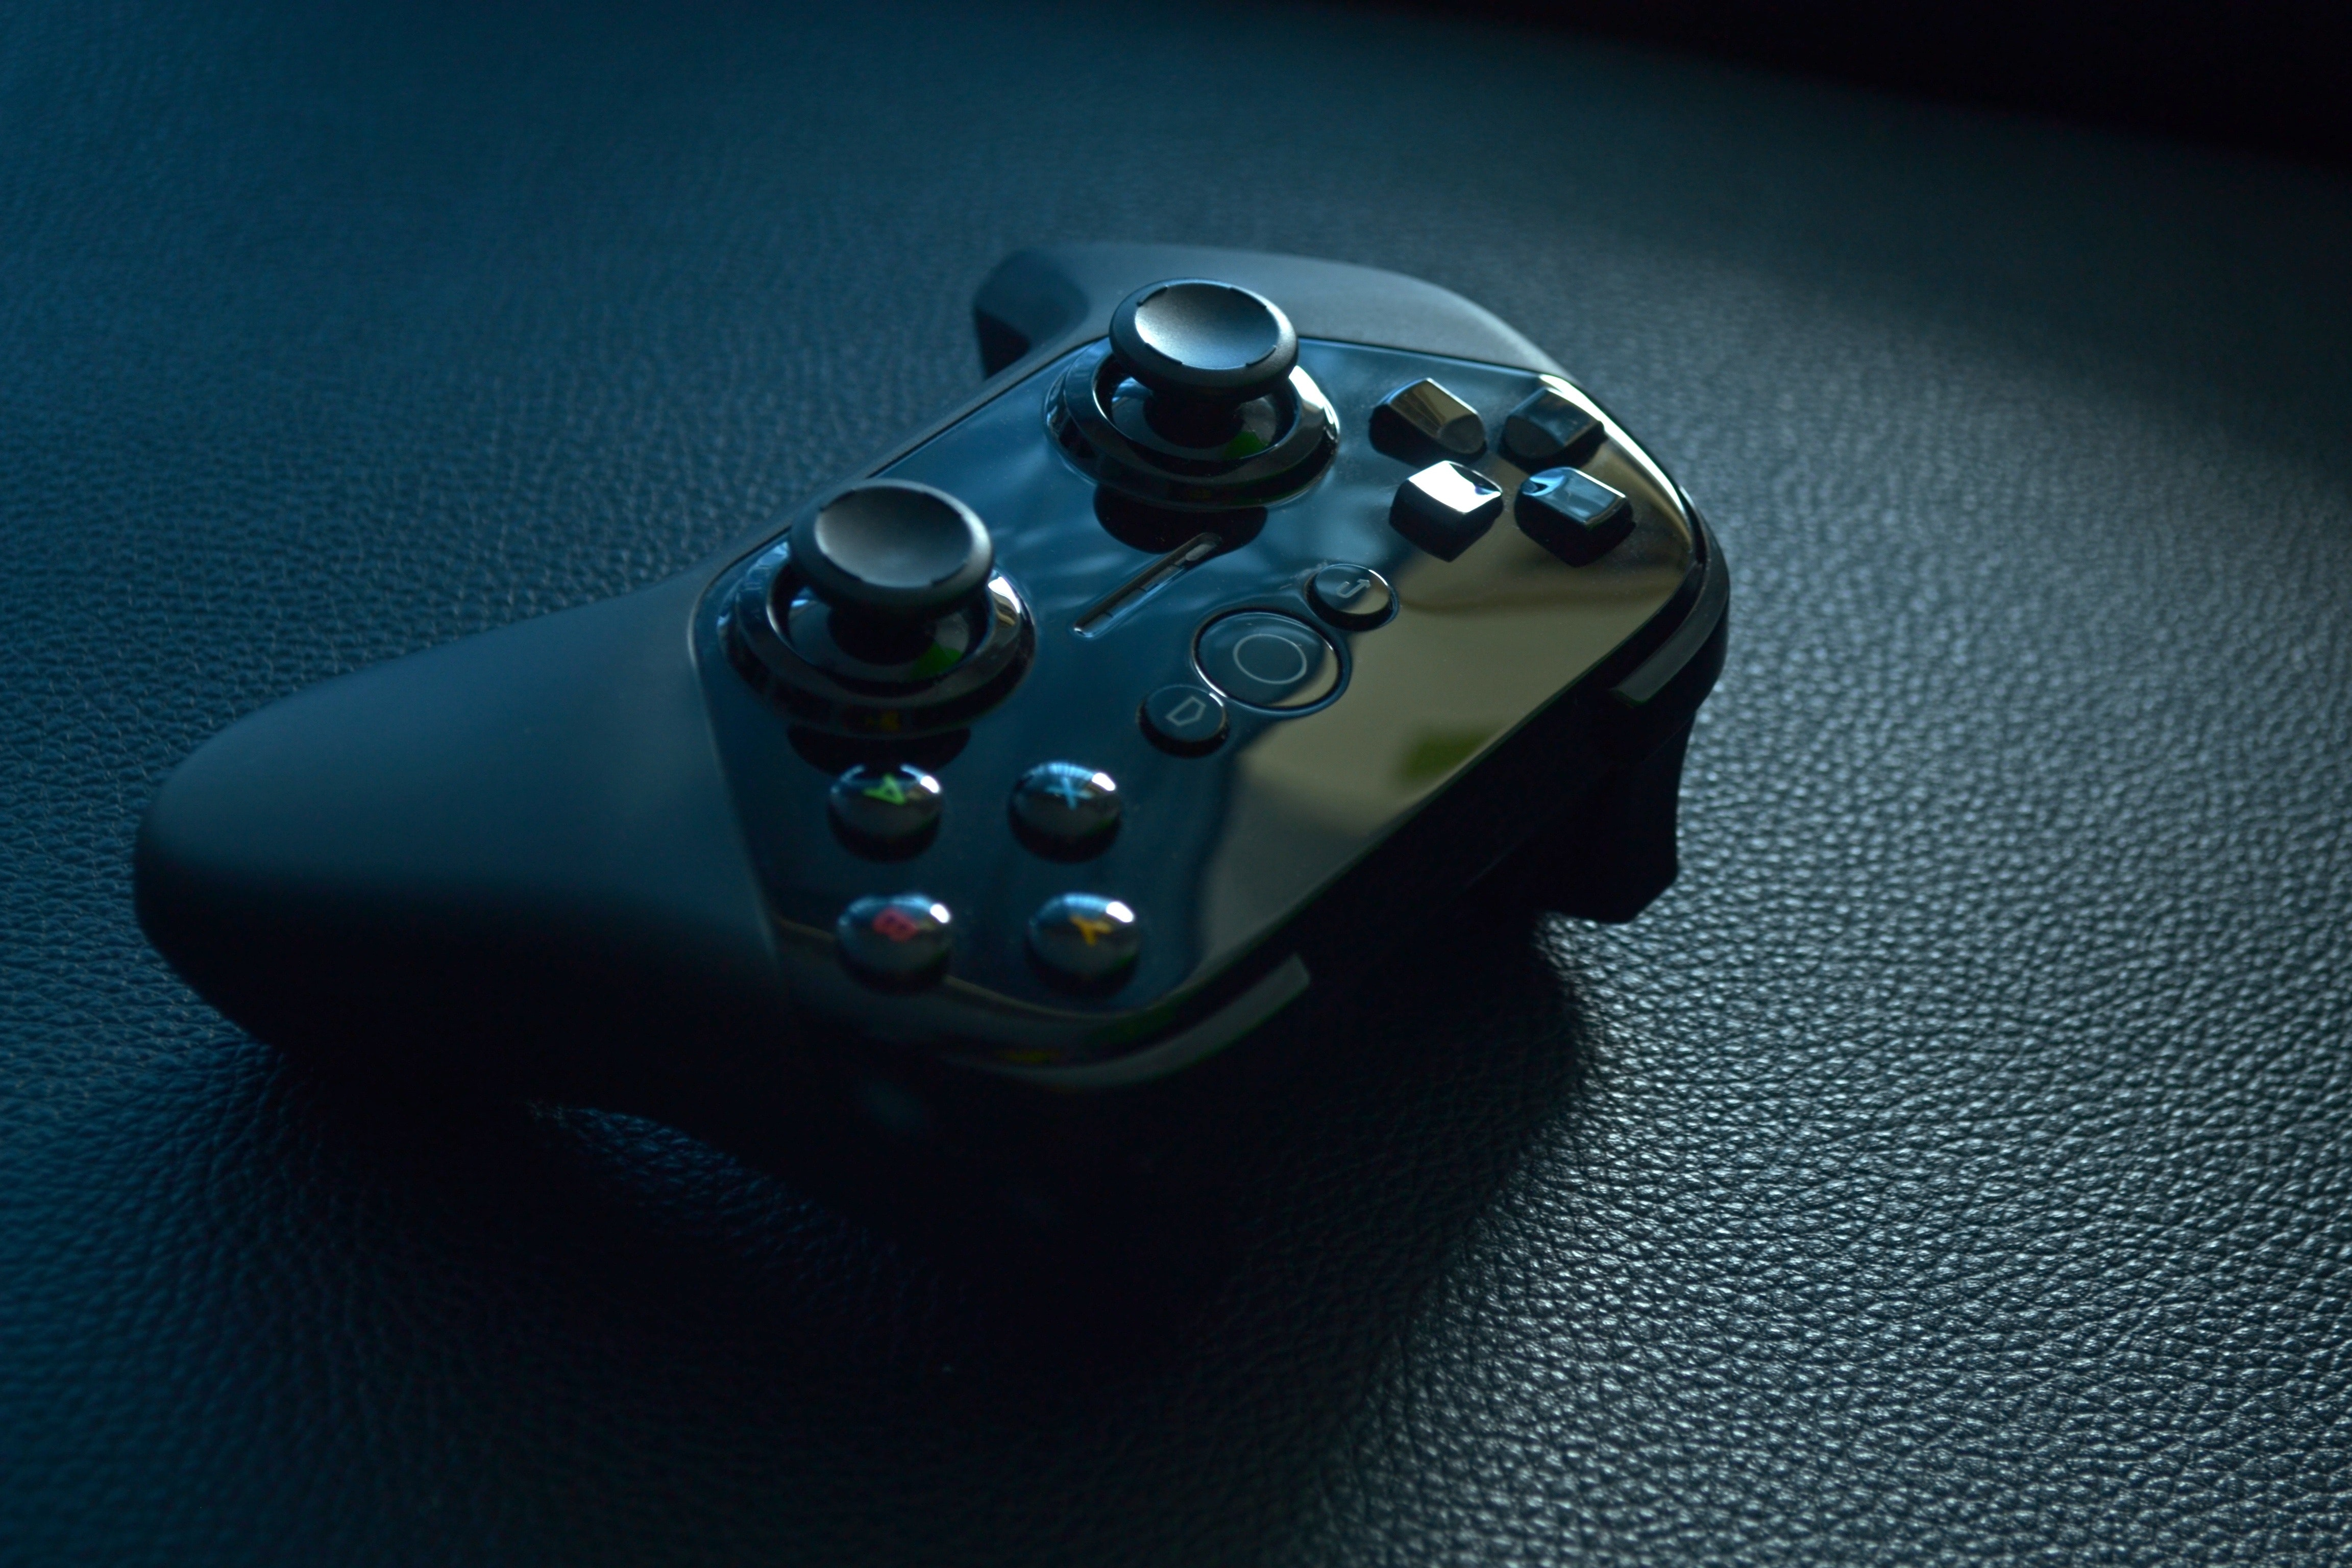 Black Wireless Game Controller on Black Leather, Analogue, Buttons, Close-up, Control, HQ Photo